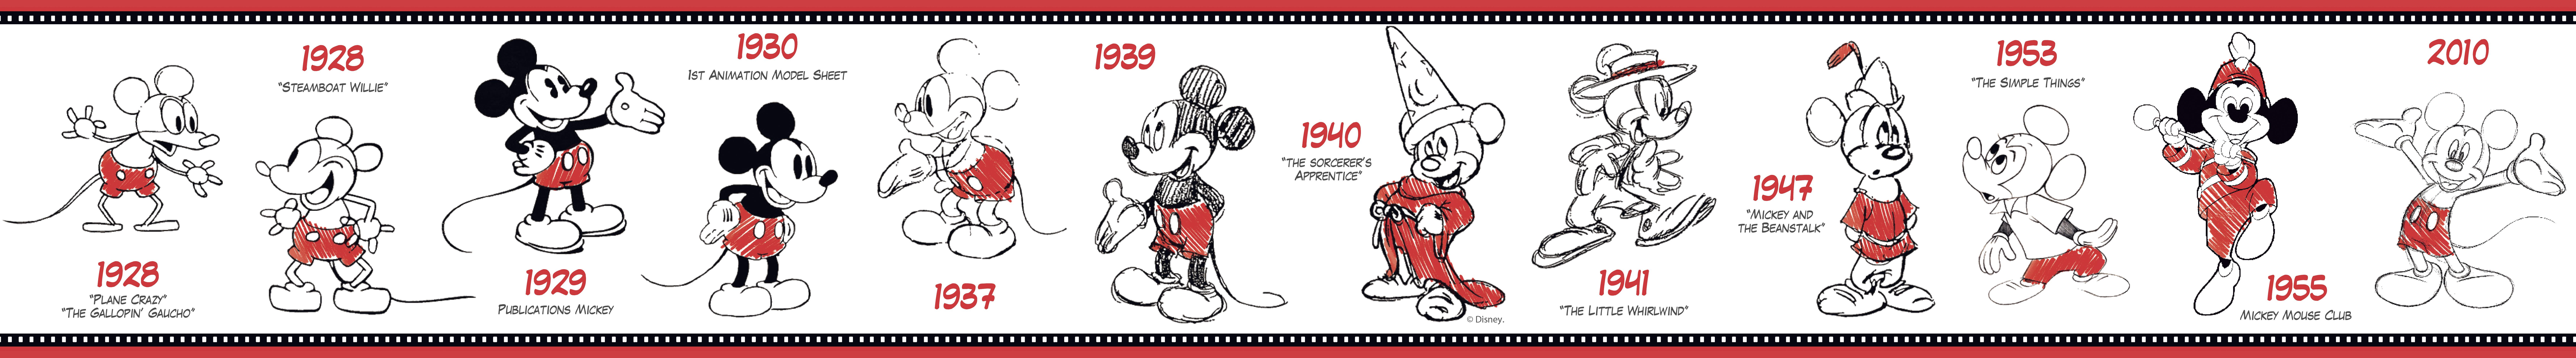 York Wallcovering Mickey Mouse 1928-2010 Wall Border Search Results